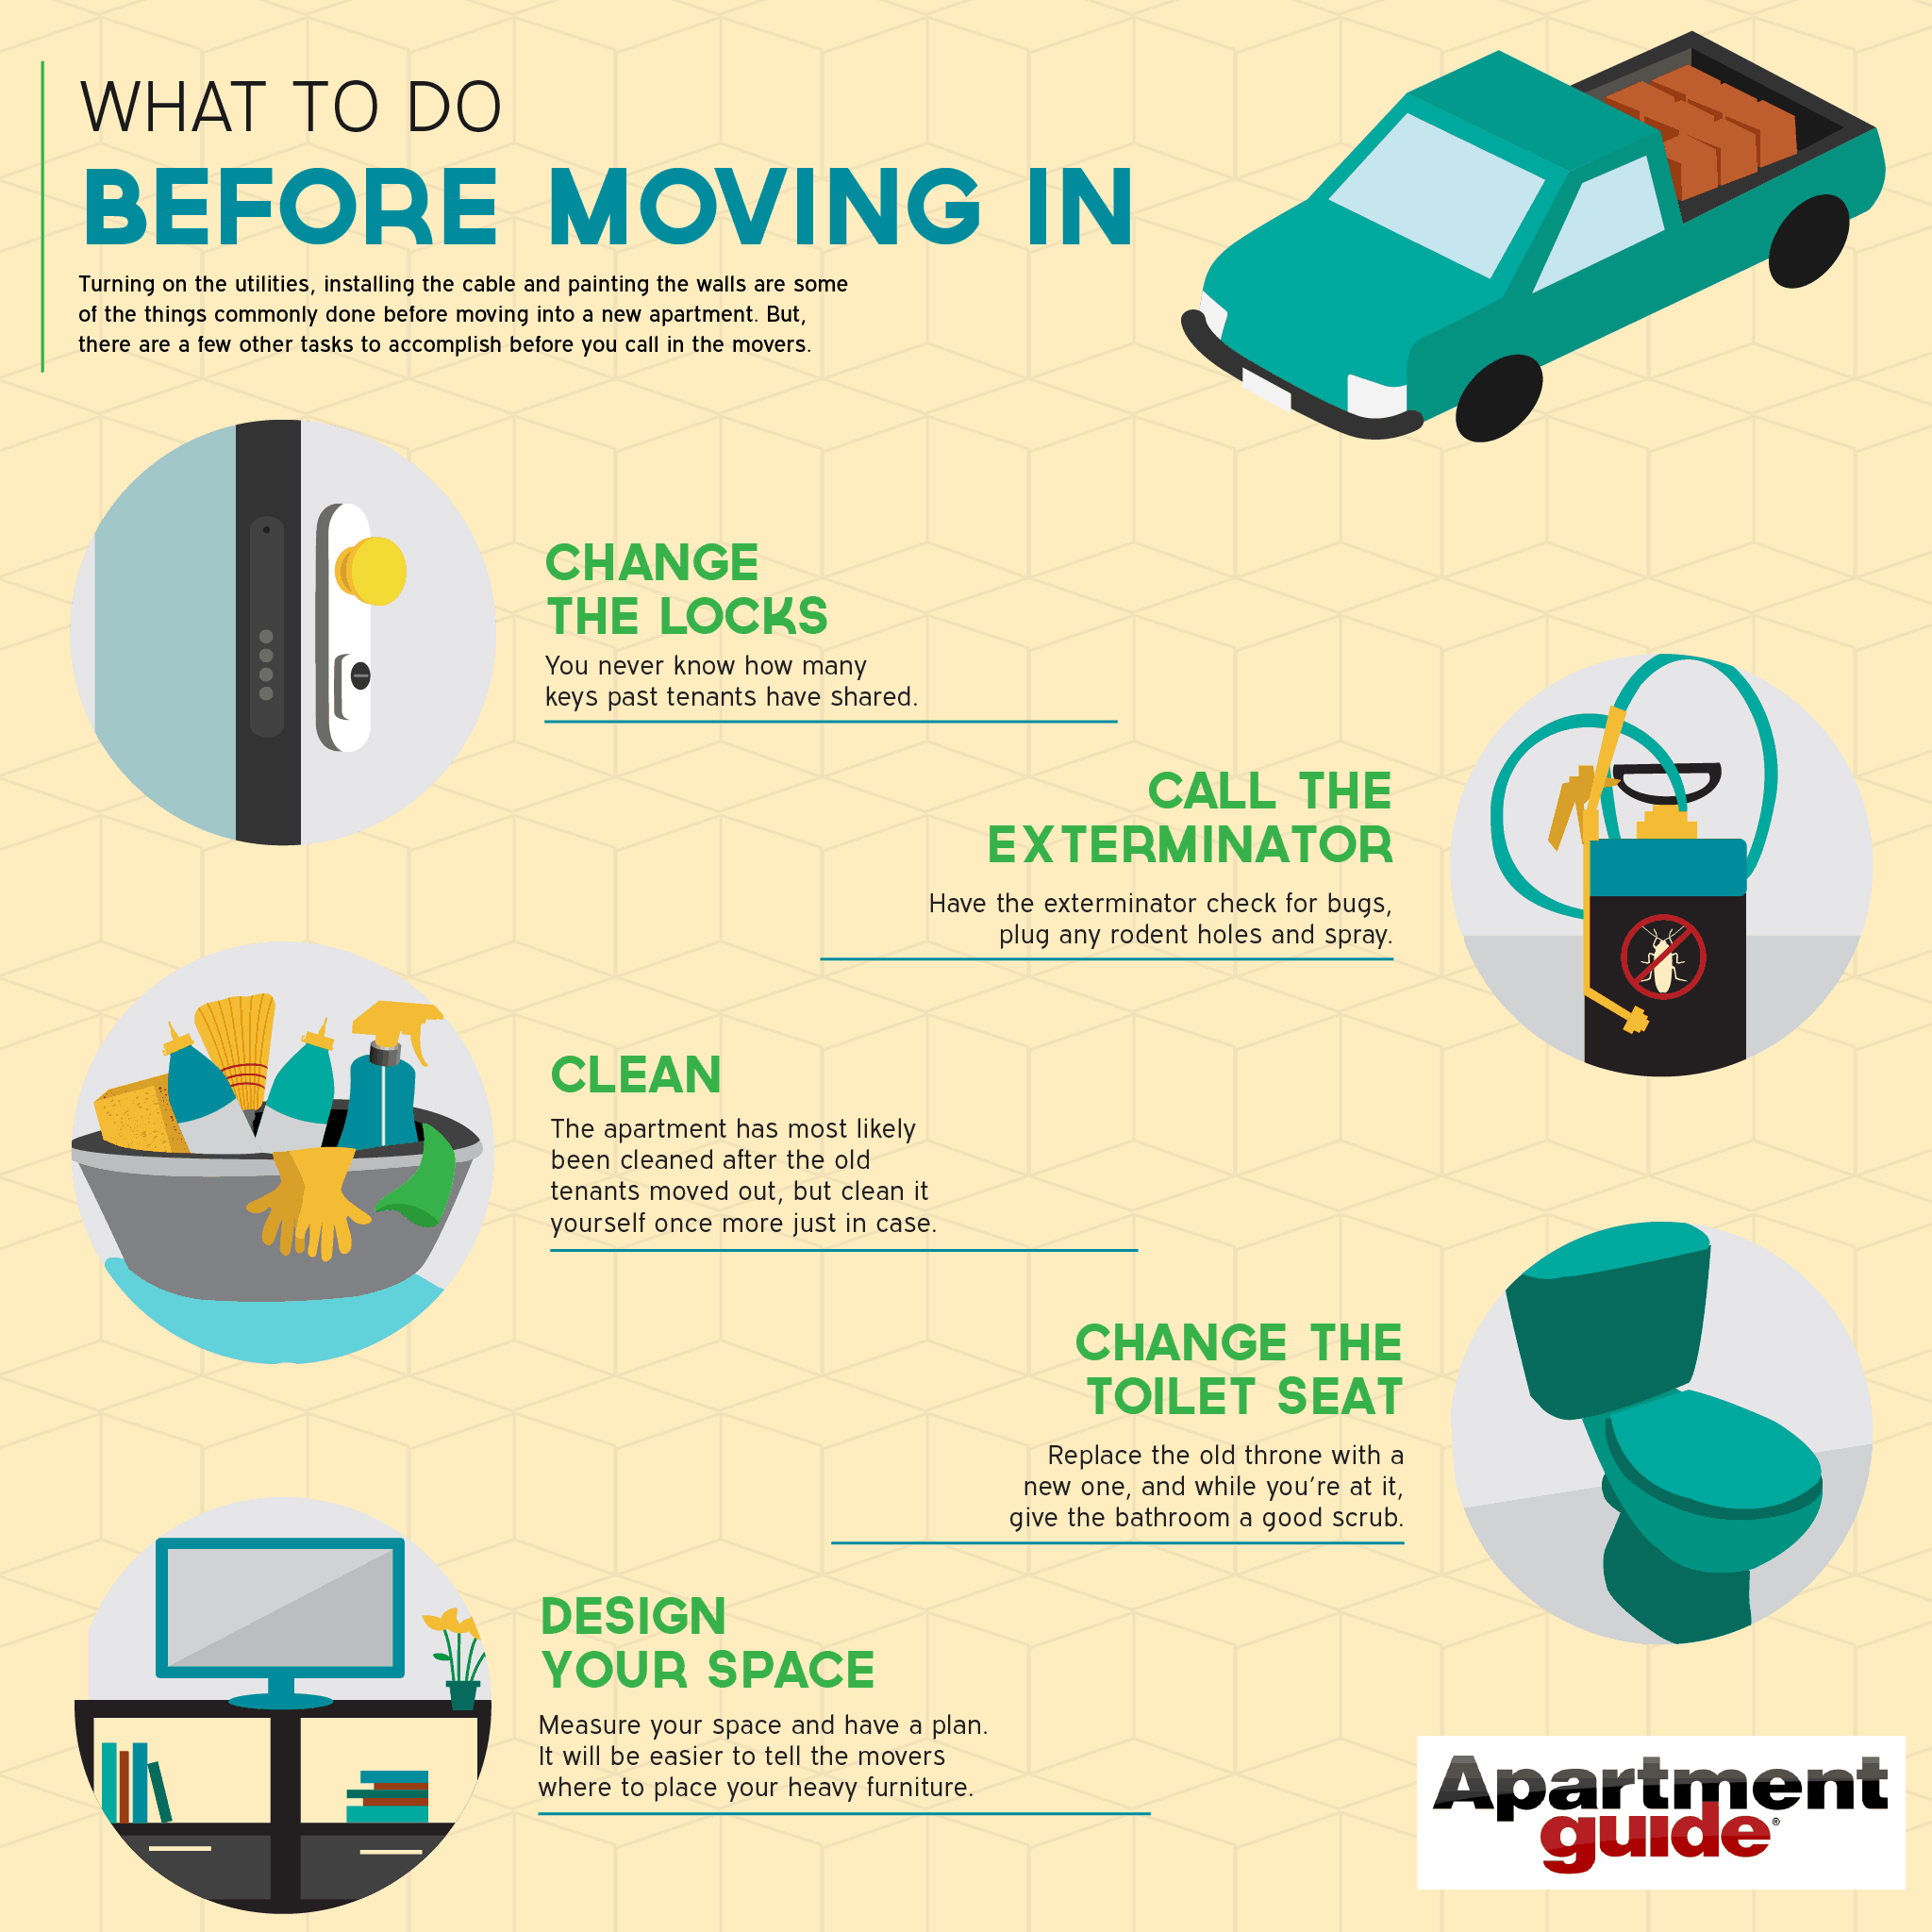 What to do before moving in infographic for Moving into a new build house tips